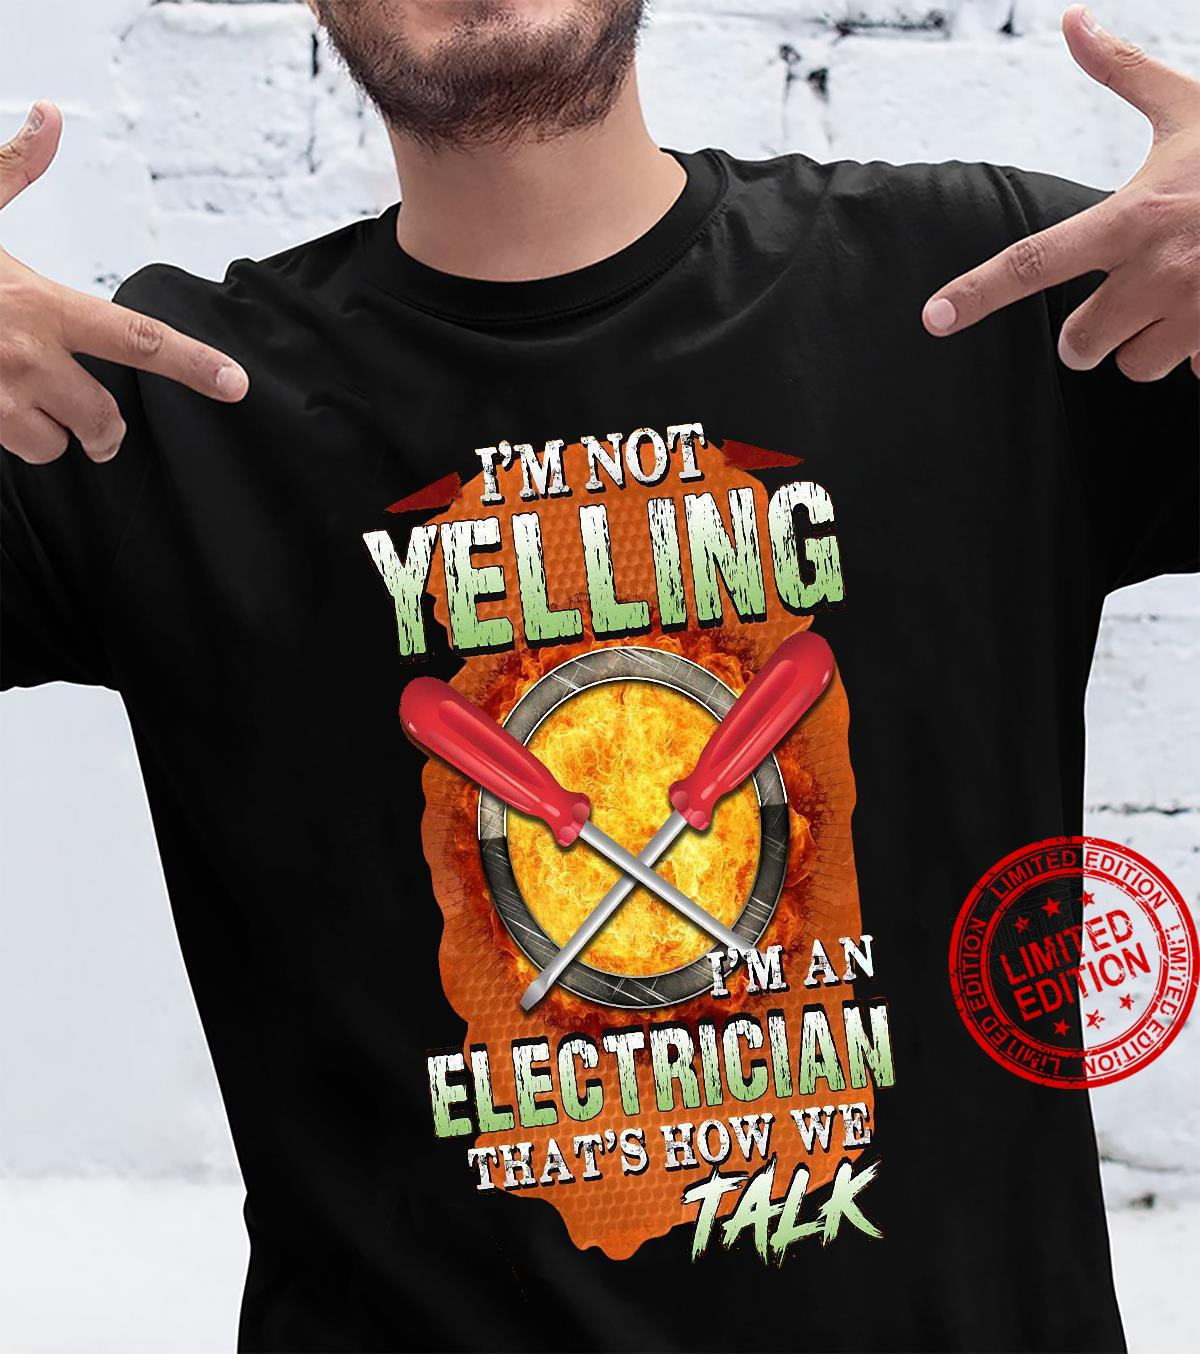 Iam Not Yelling Iam An Electrician That's How We Talk Shirt